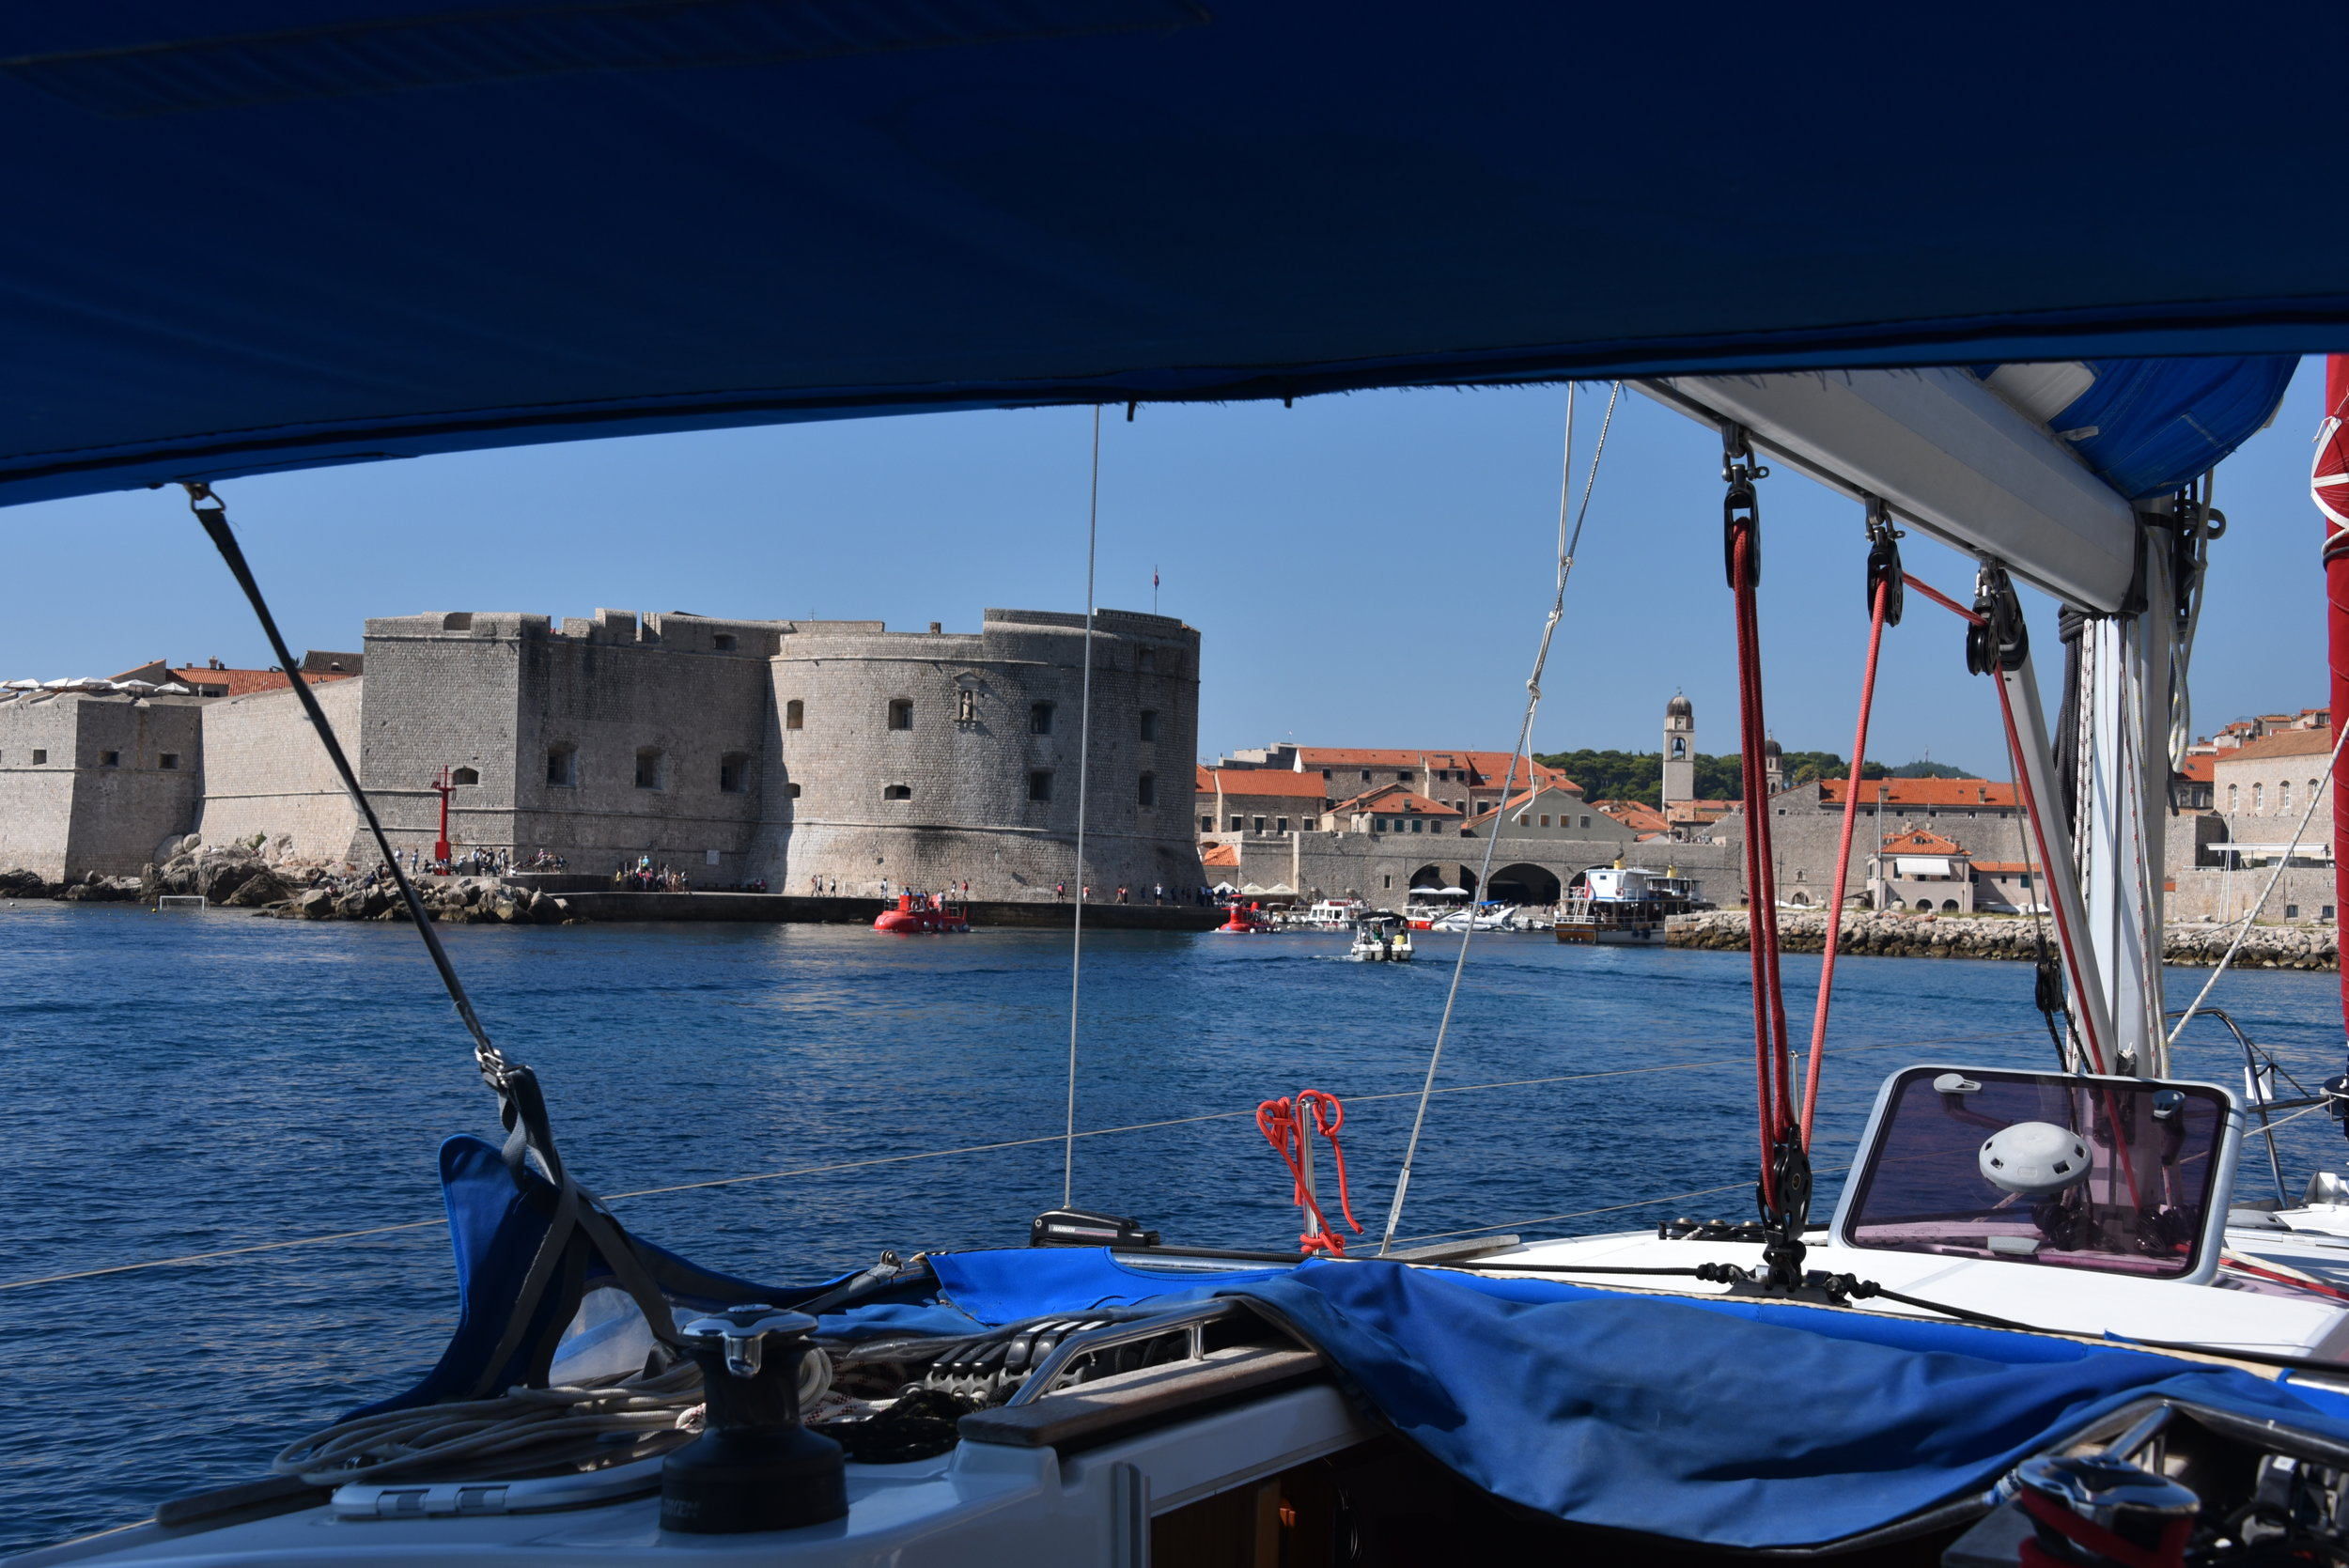 Peeking into the small but very busy harbor inside the walls.